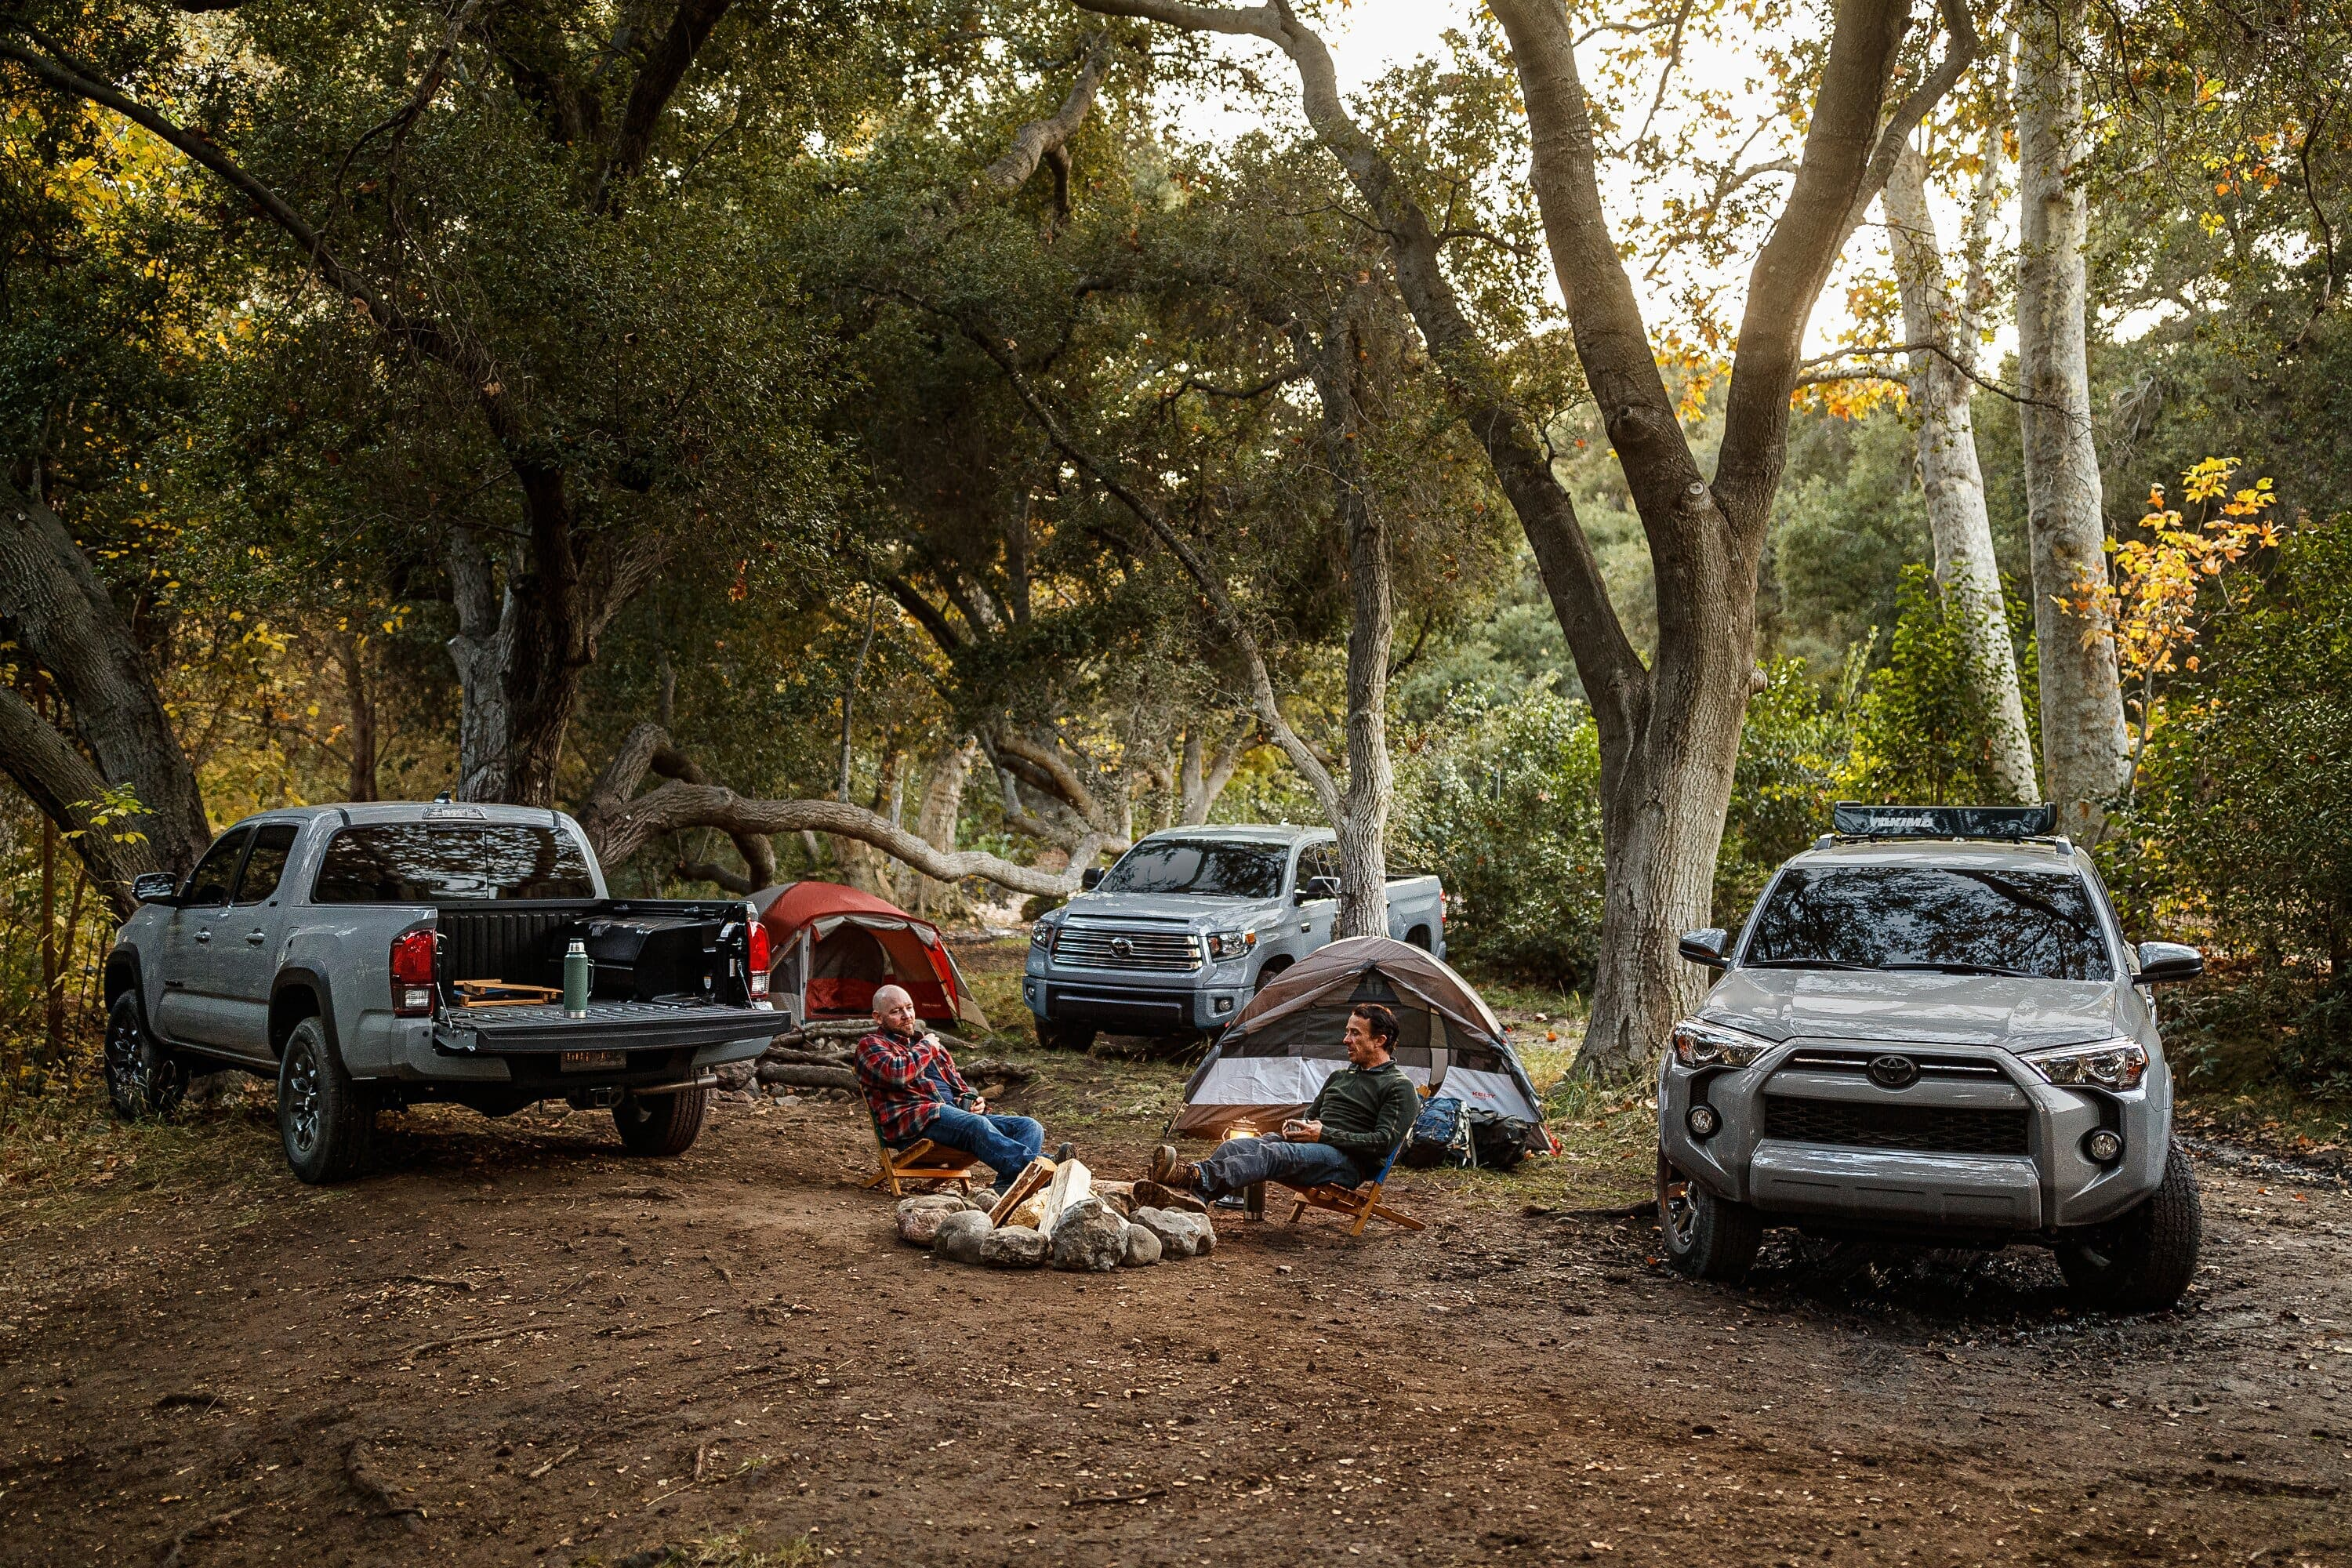 toyota trucks in forest with campers